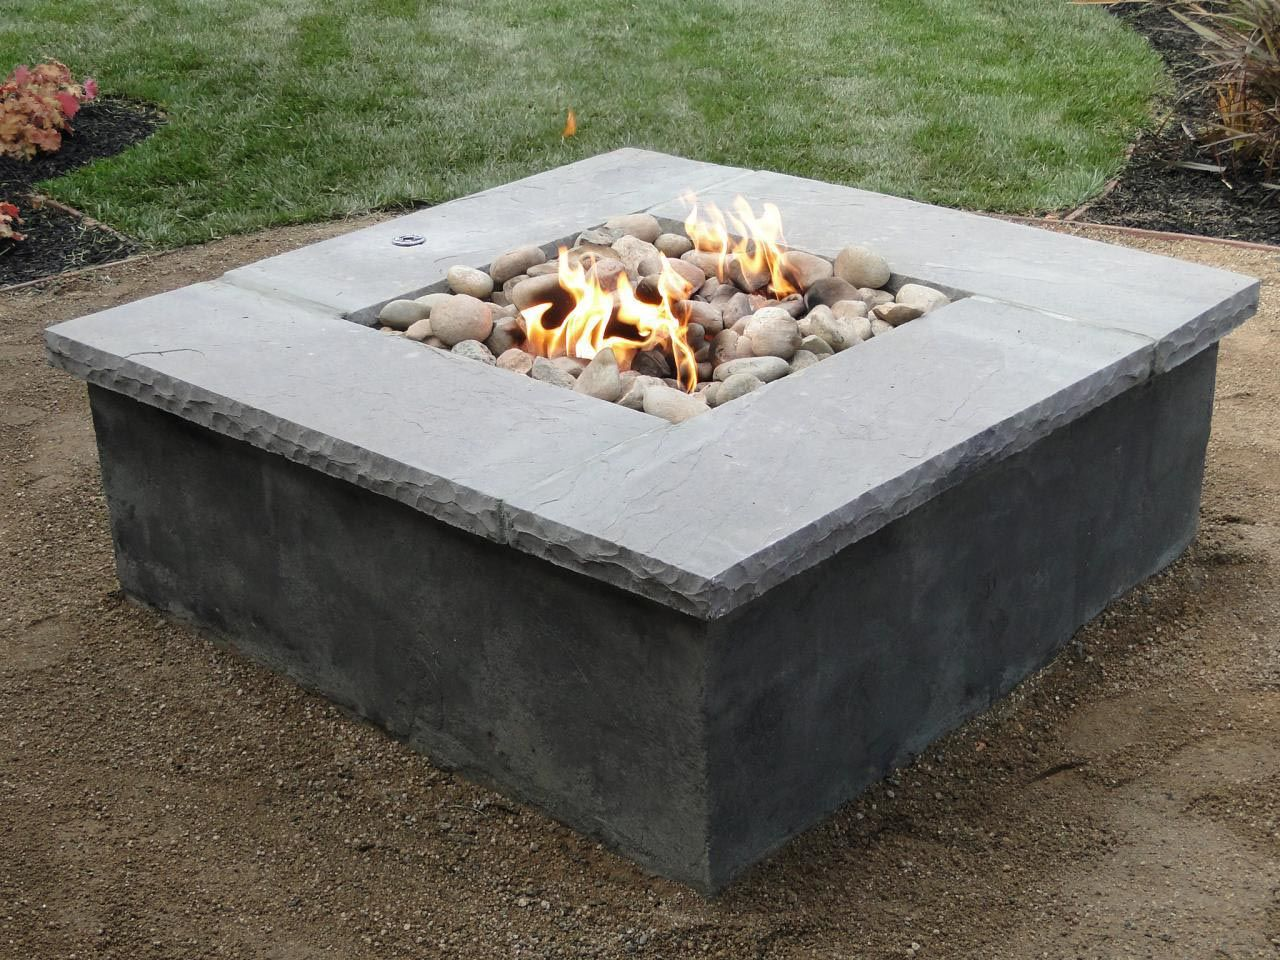 Cinder Block Ideas Cinder Block Fire Pit Cinder Block Bench Cinder Block Garden Garden Desi Outdoor Propane Fire Pit Cinder Block Fire Pit Natural Gas Fire Pit